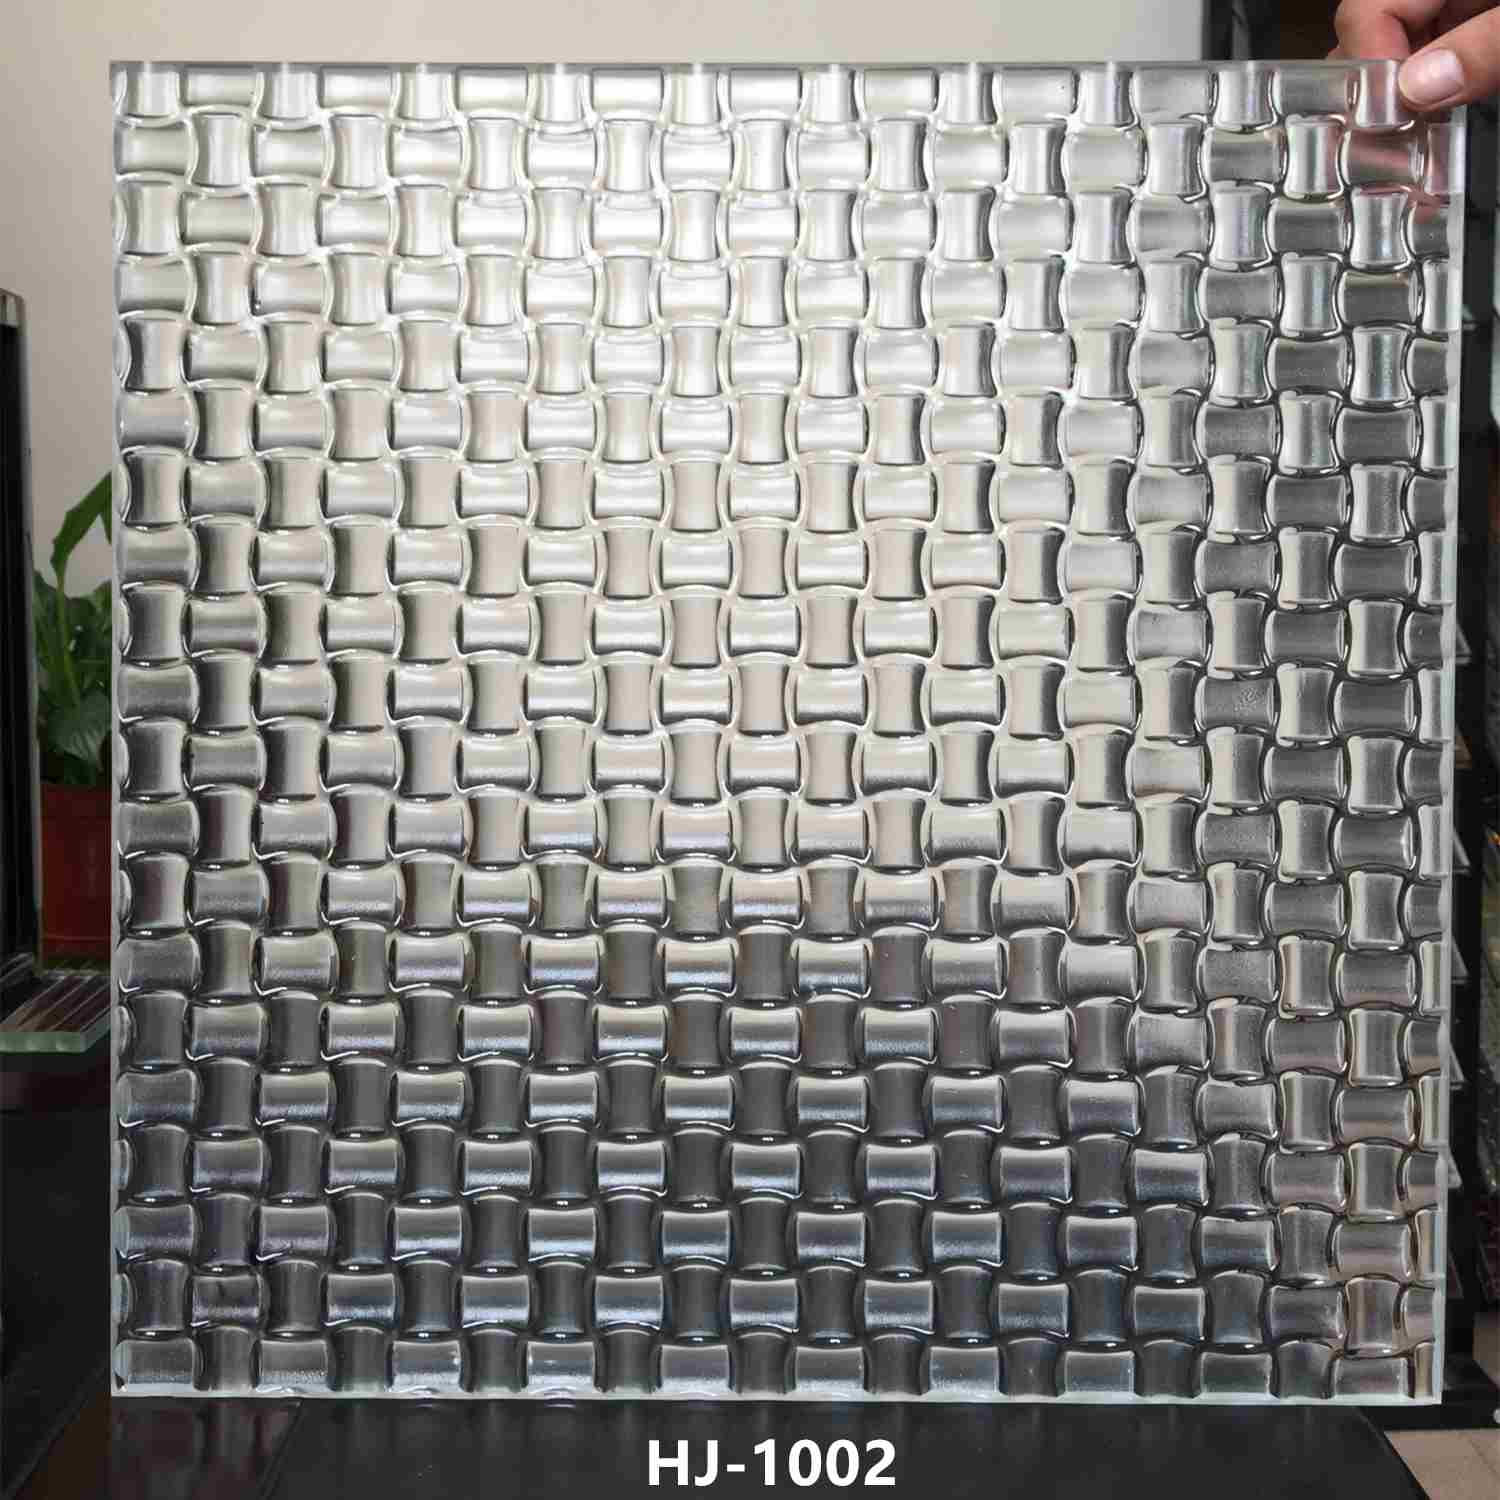 pattern glass hj 1002